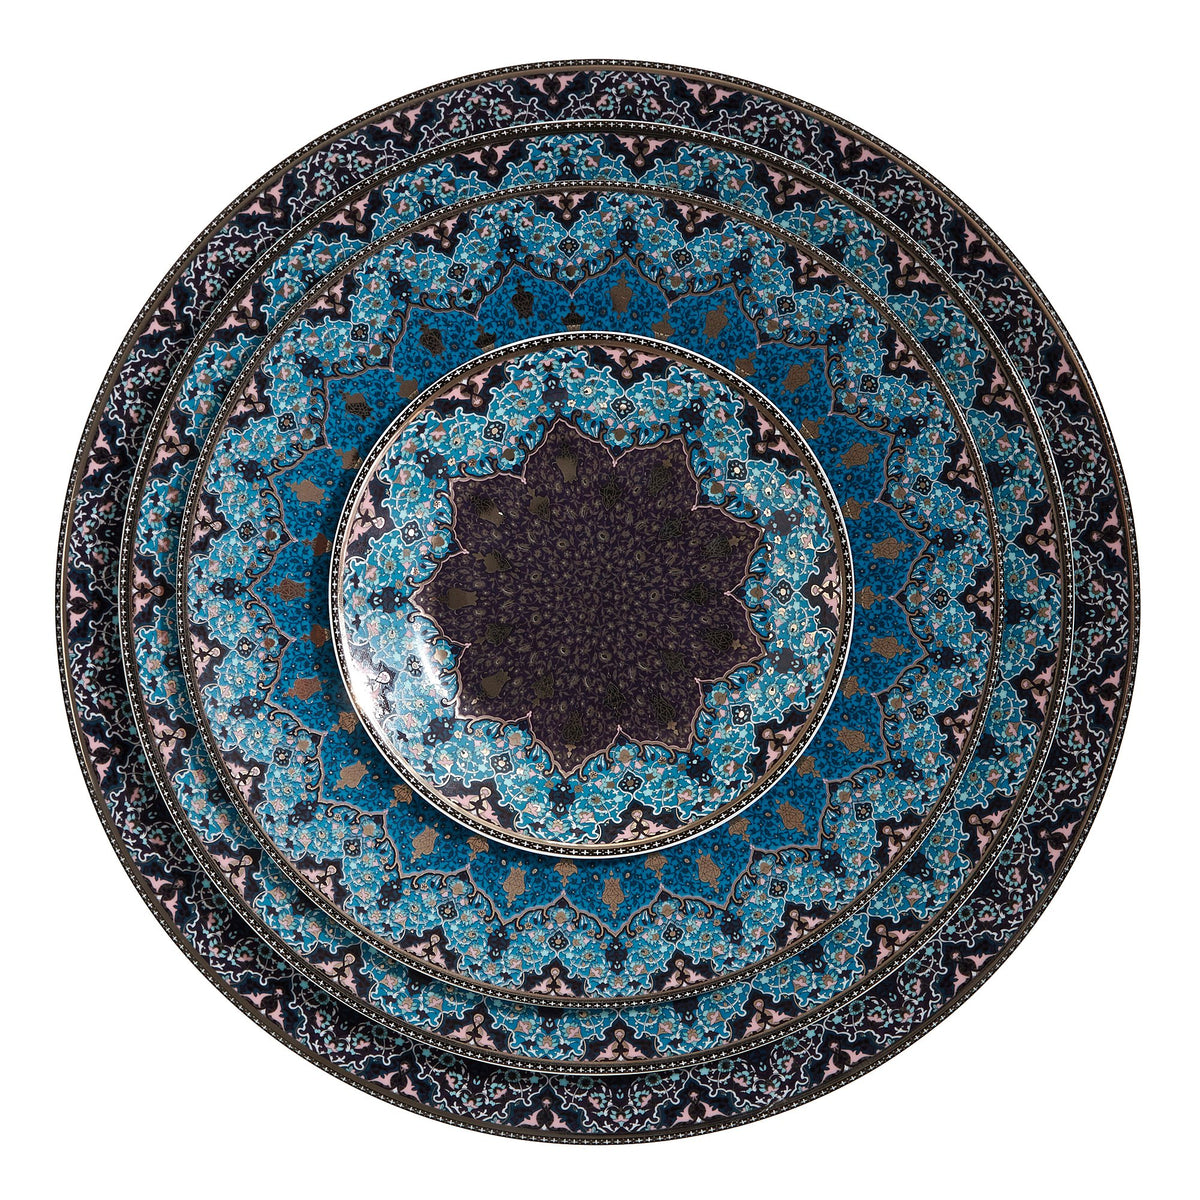 Dhara Peacock Bread and Butter Plate